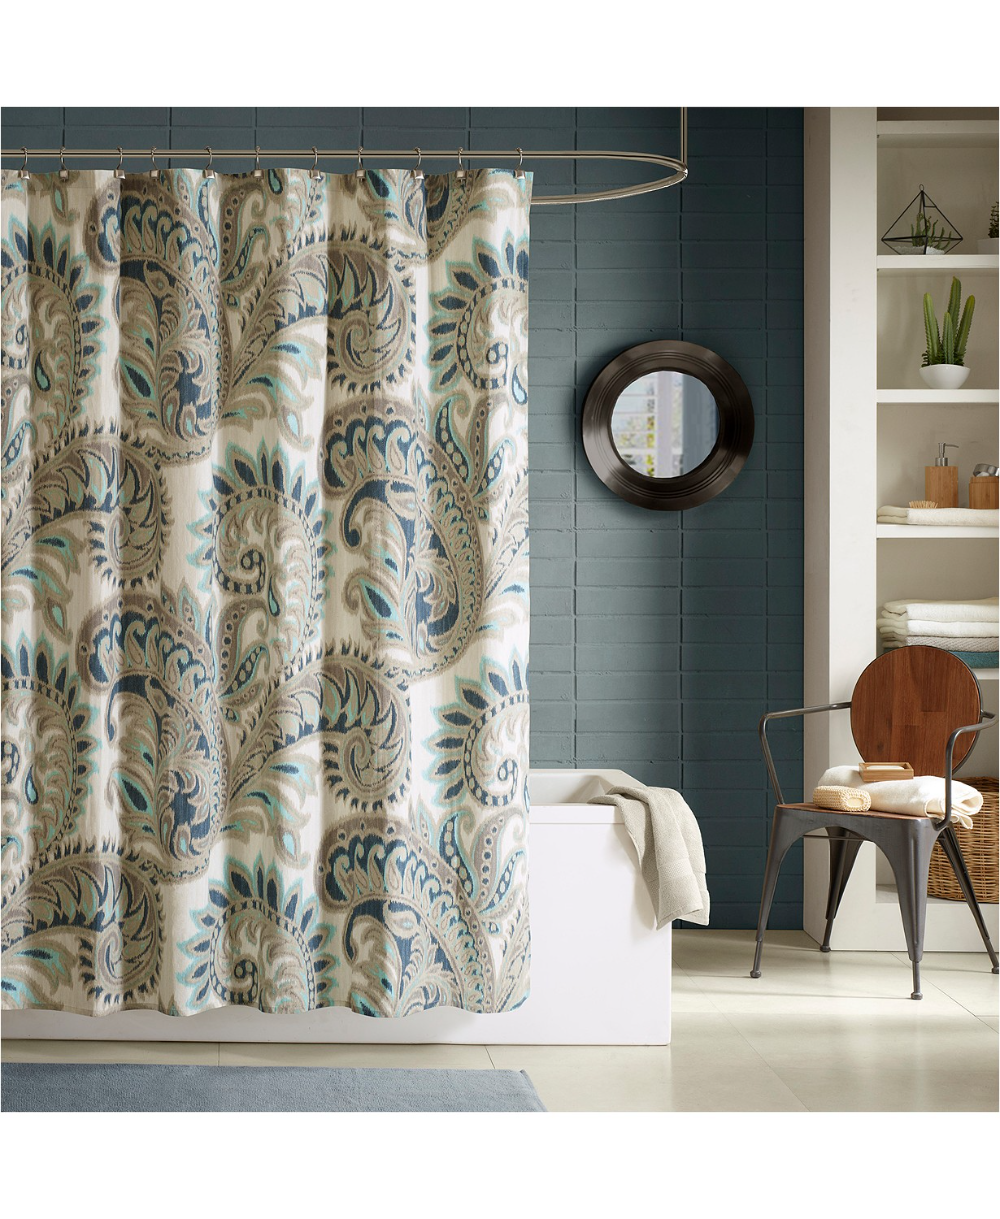 Ink Ivy Mira Cotton 72 In 2021 Blue Shower Curtains Shower Curtain Cotton Shower Curtain Ink and ivy shower curtain